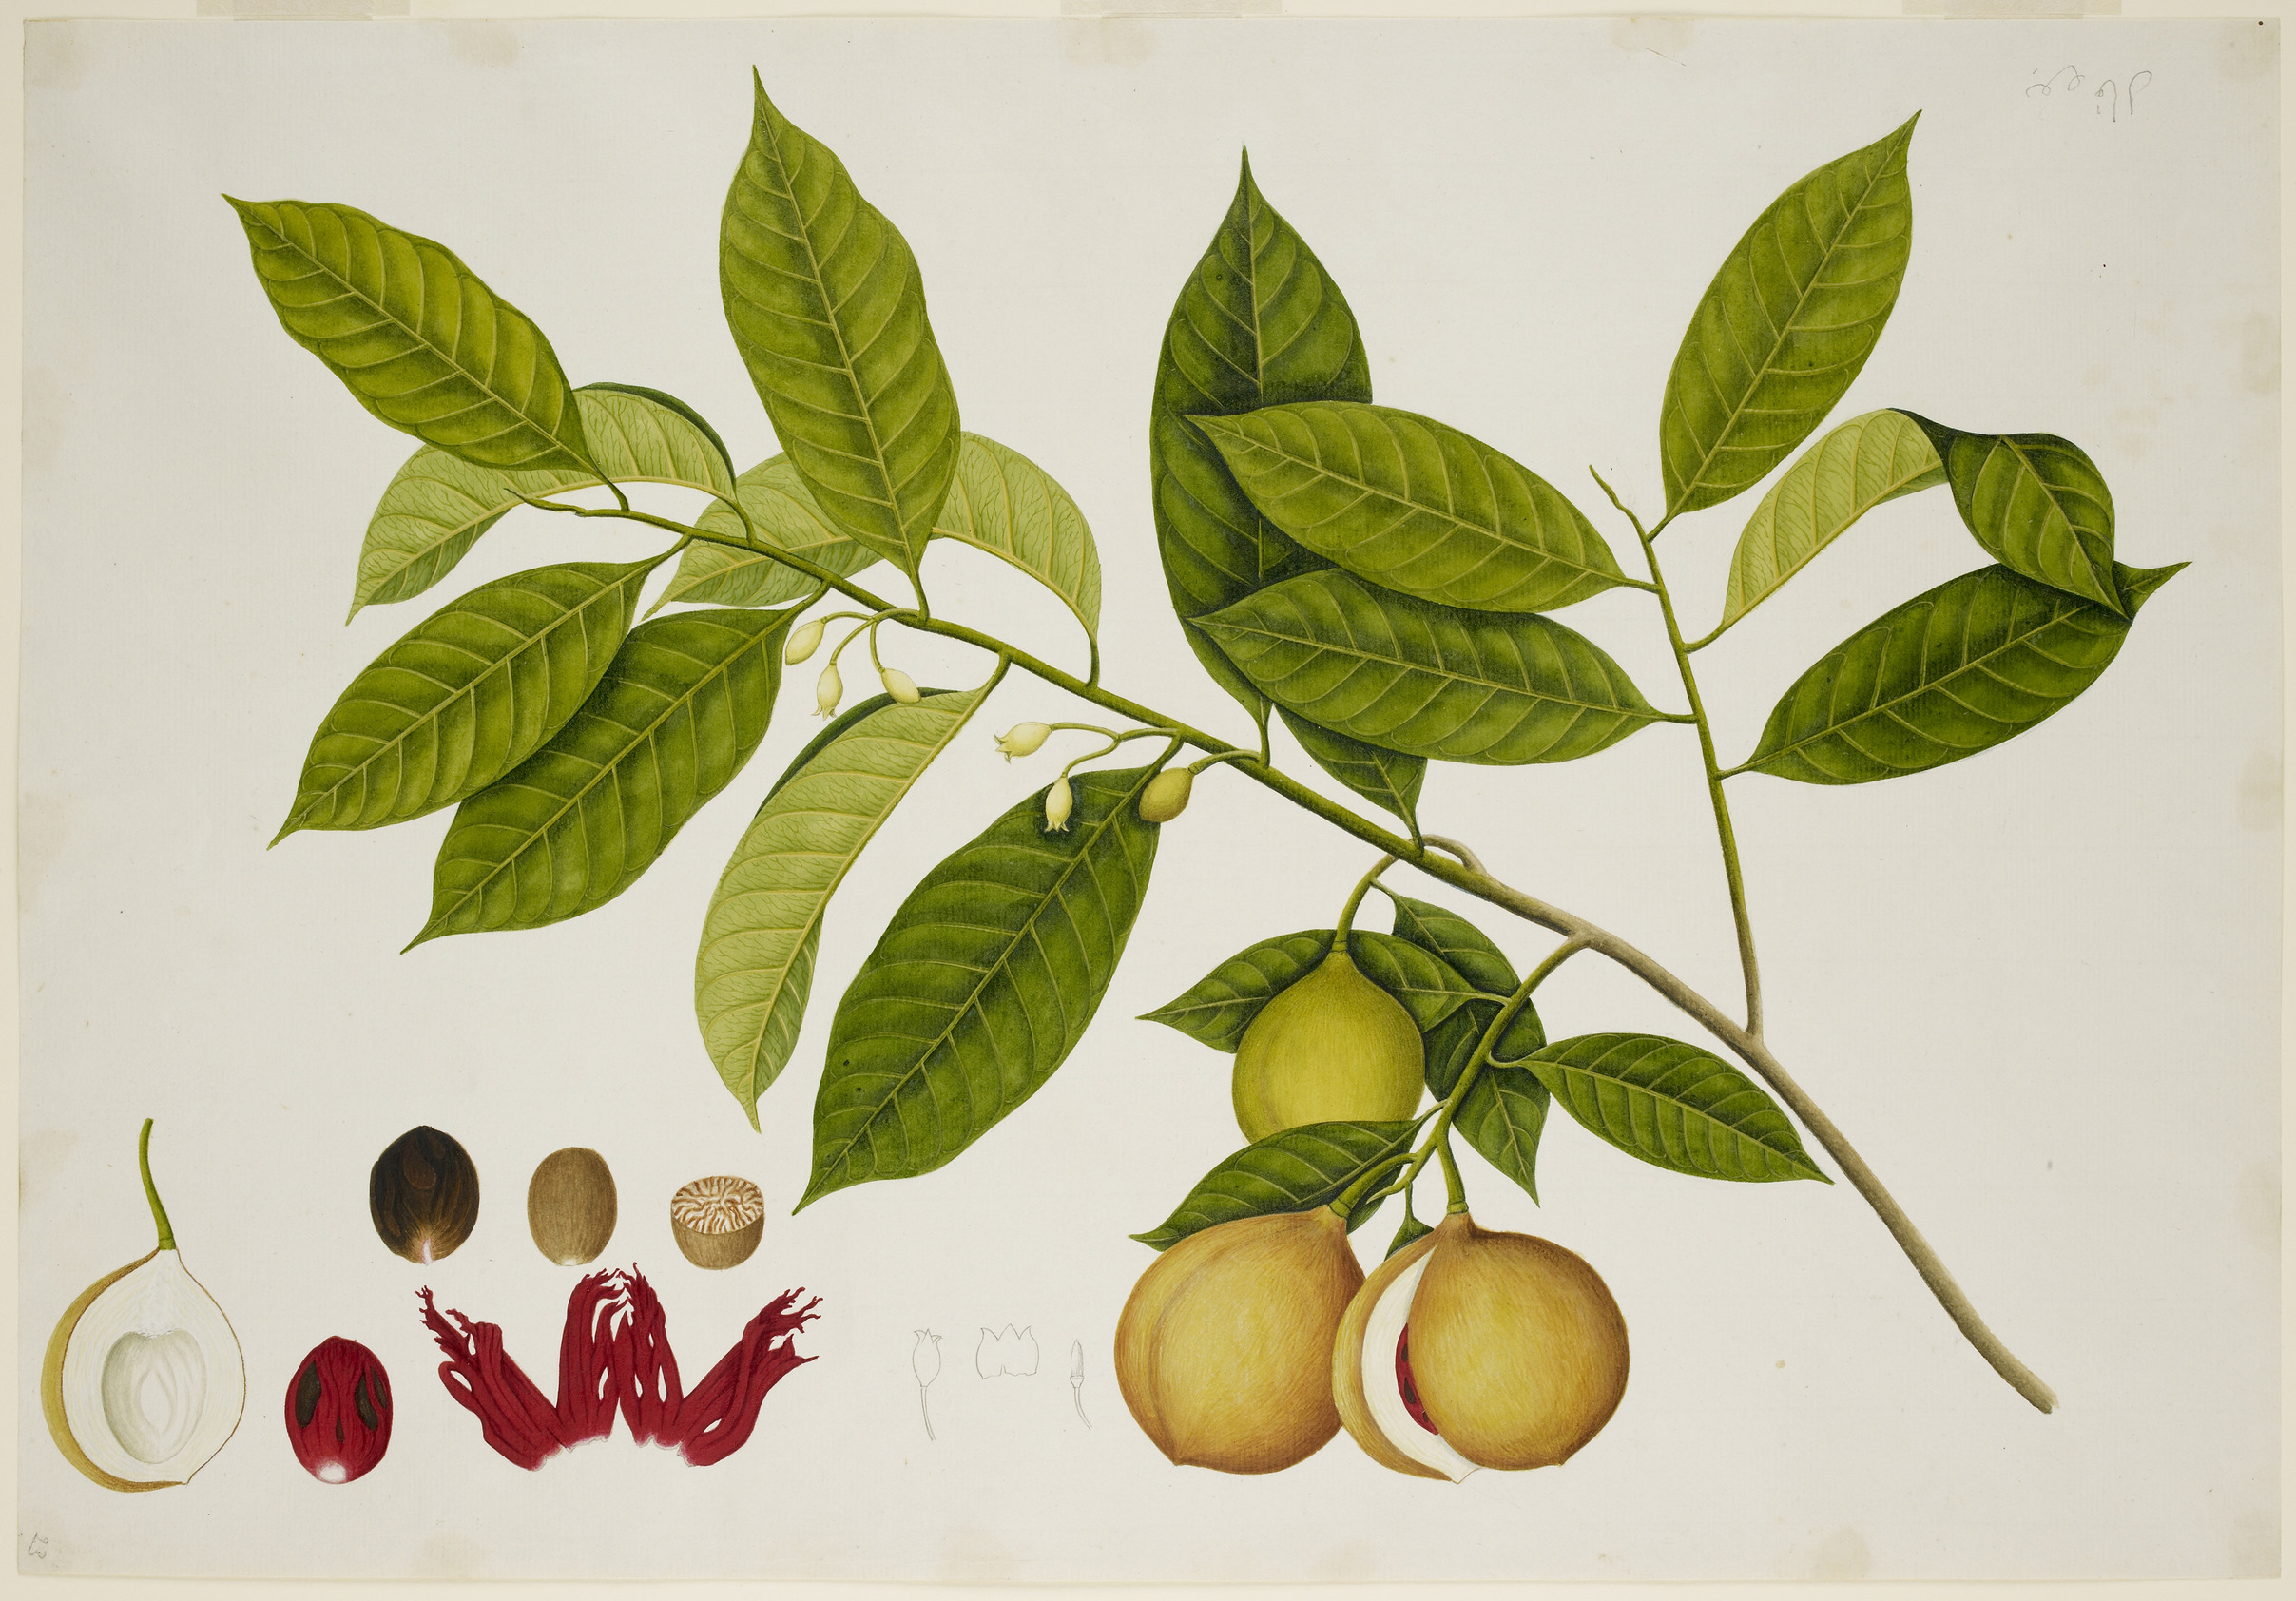 Nutmeg Tree, for Sir Stamford Raffles.